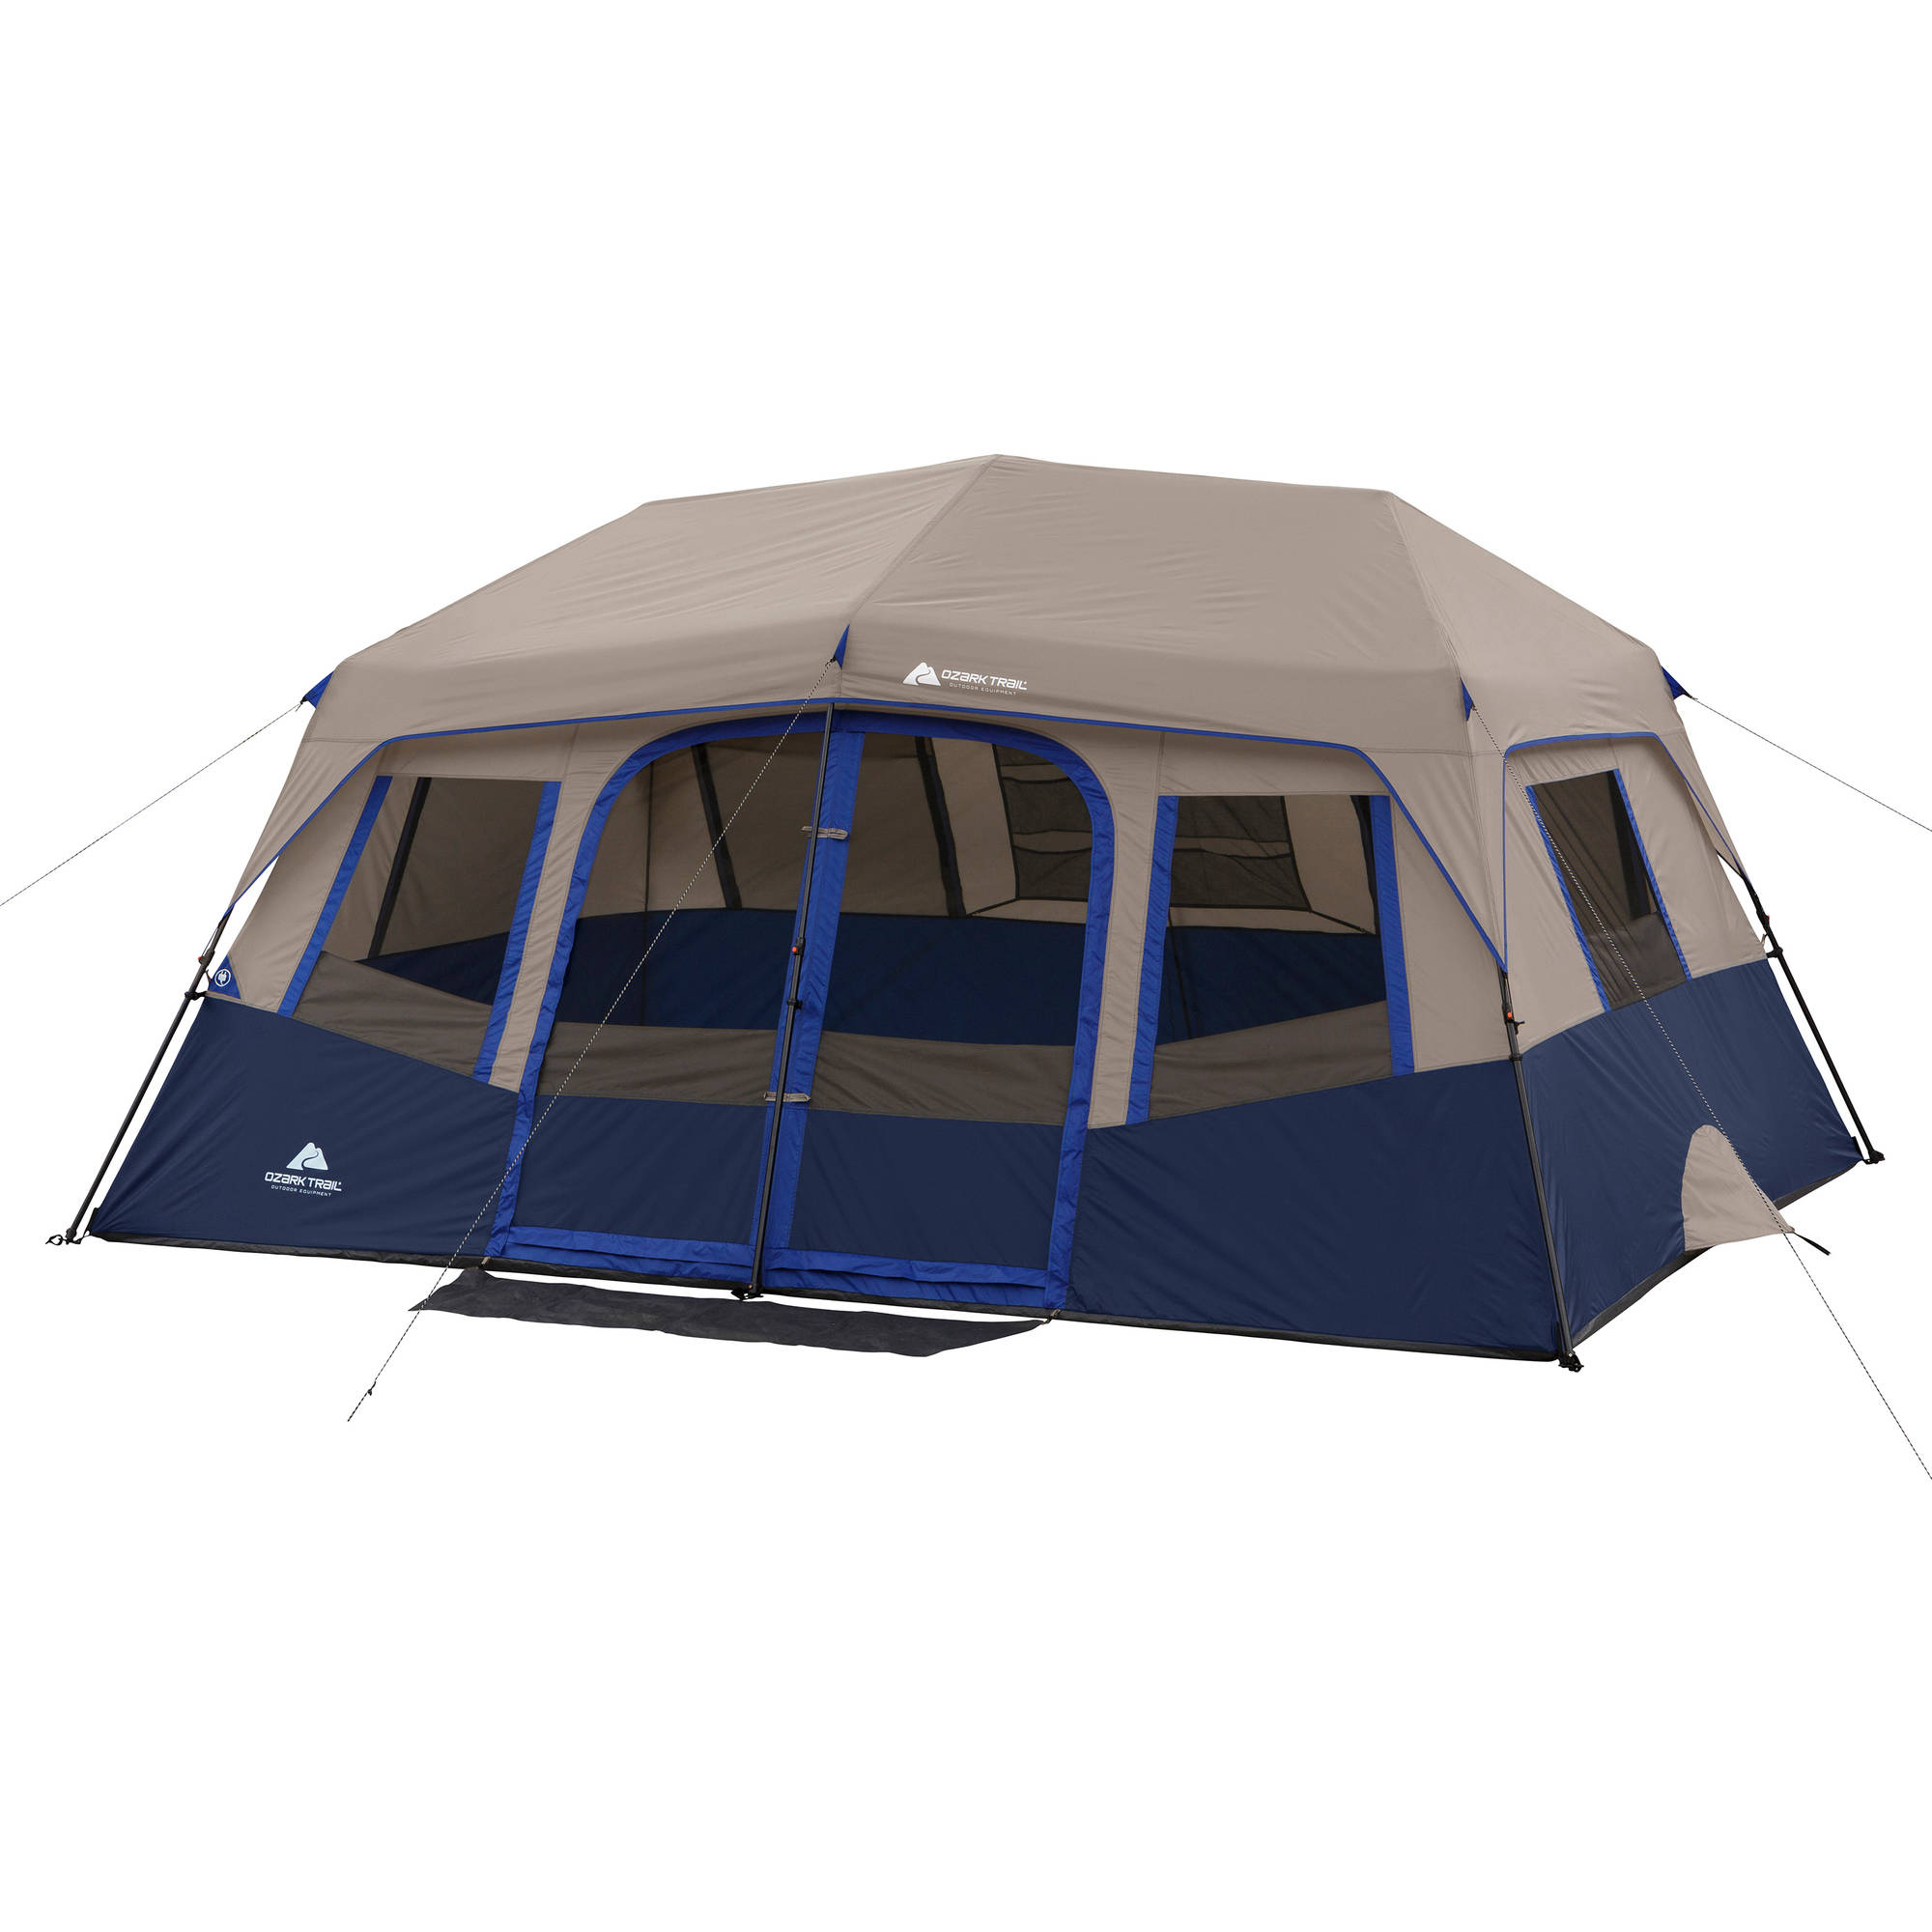 Ozark Trail 10 Person 2 Room Instant Cabin Tent  sc 1 st  Walmart & nonConfig